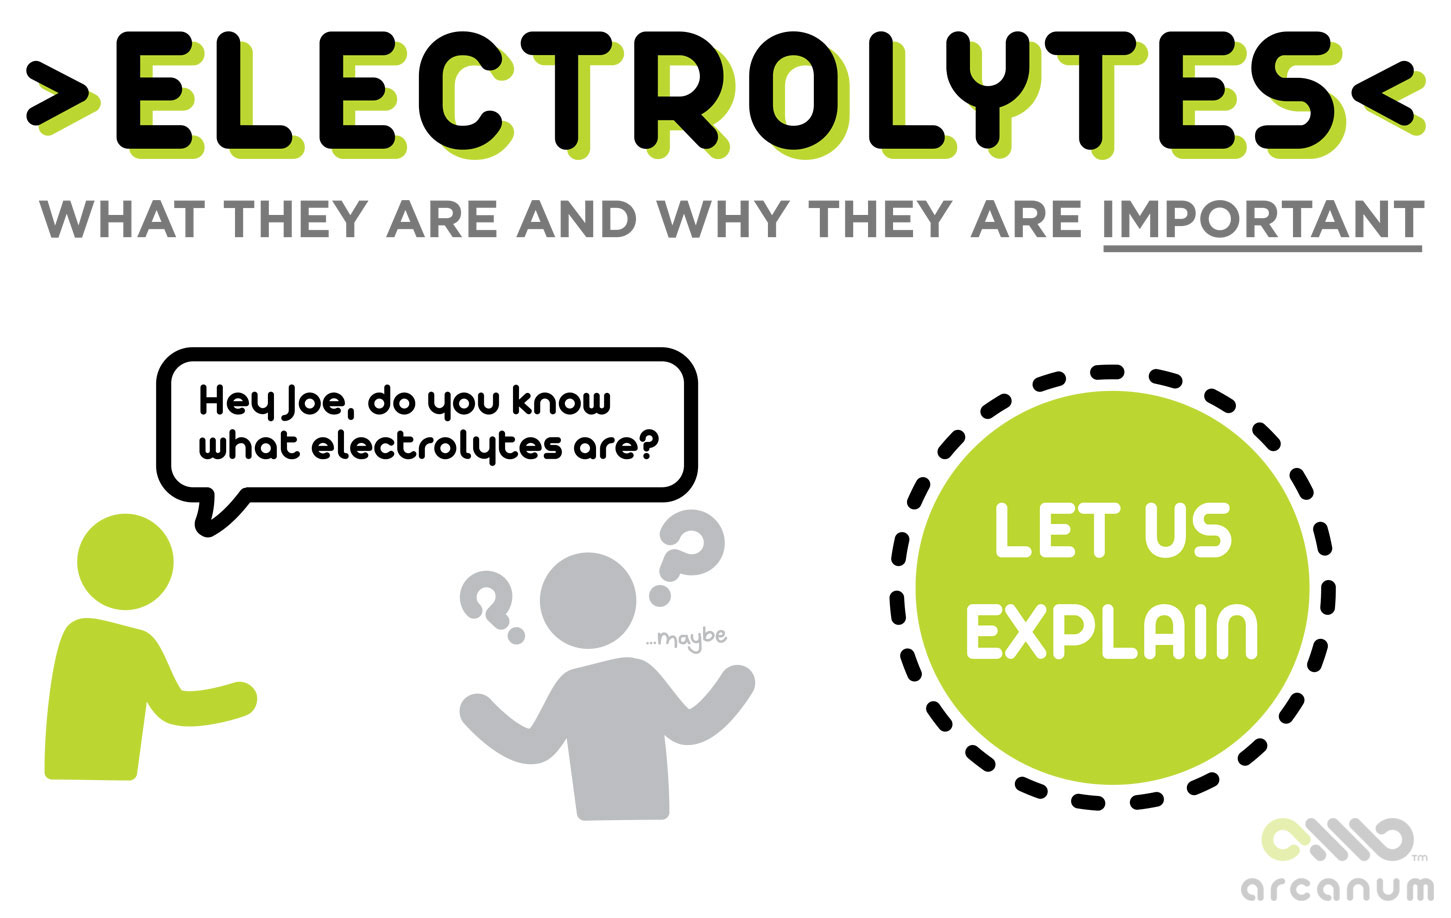 What are Electrolytes